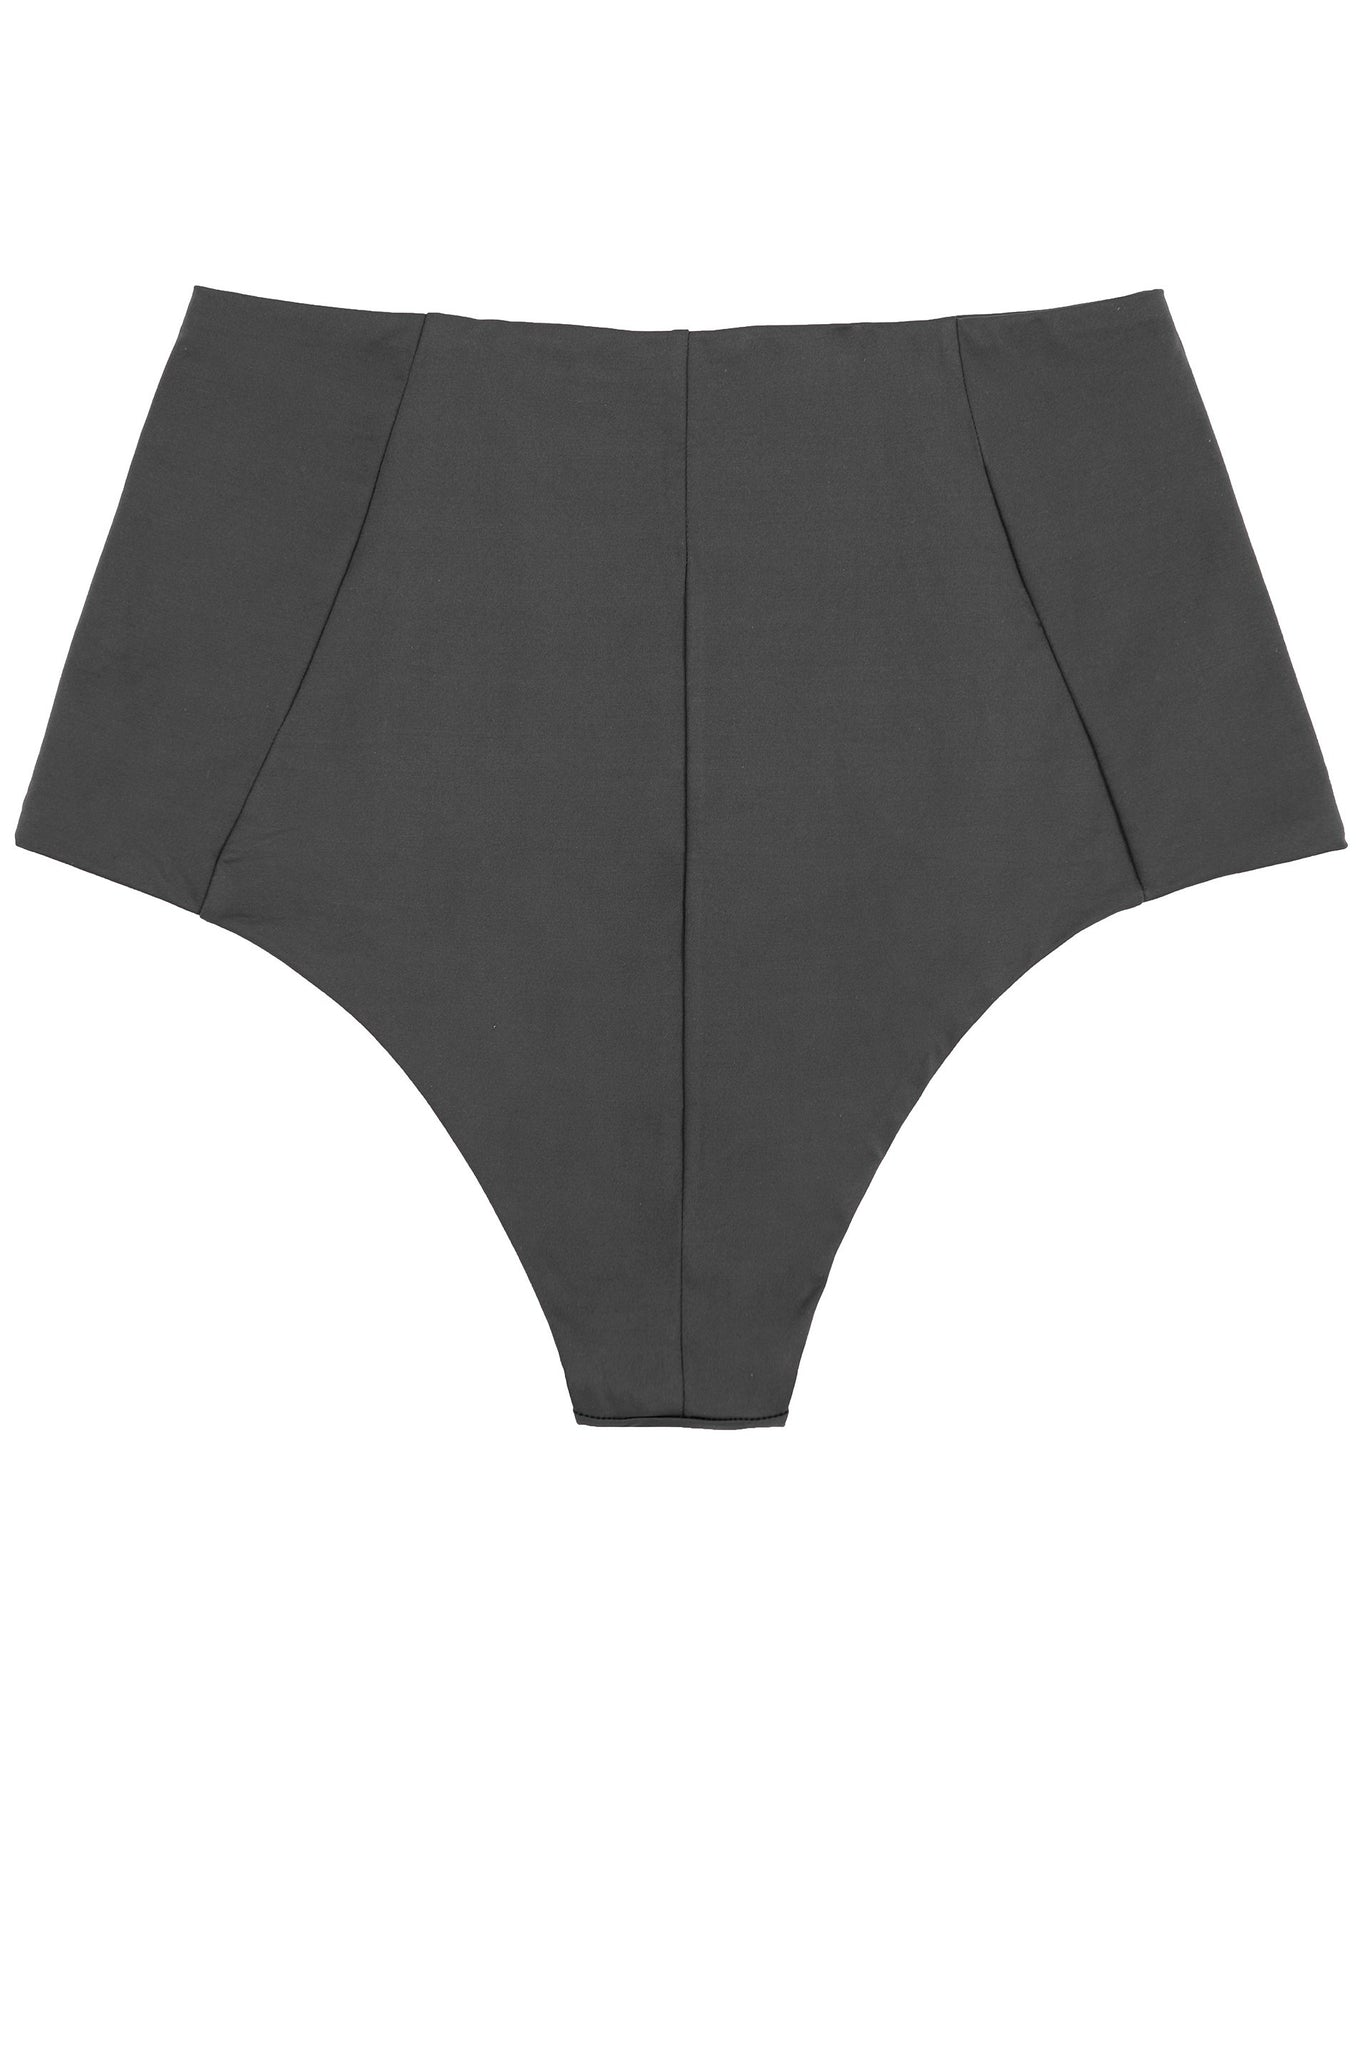 High waisted bikini bottoms in charcoal with retro look and reversible by Caroline af Rosenborg